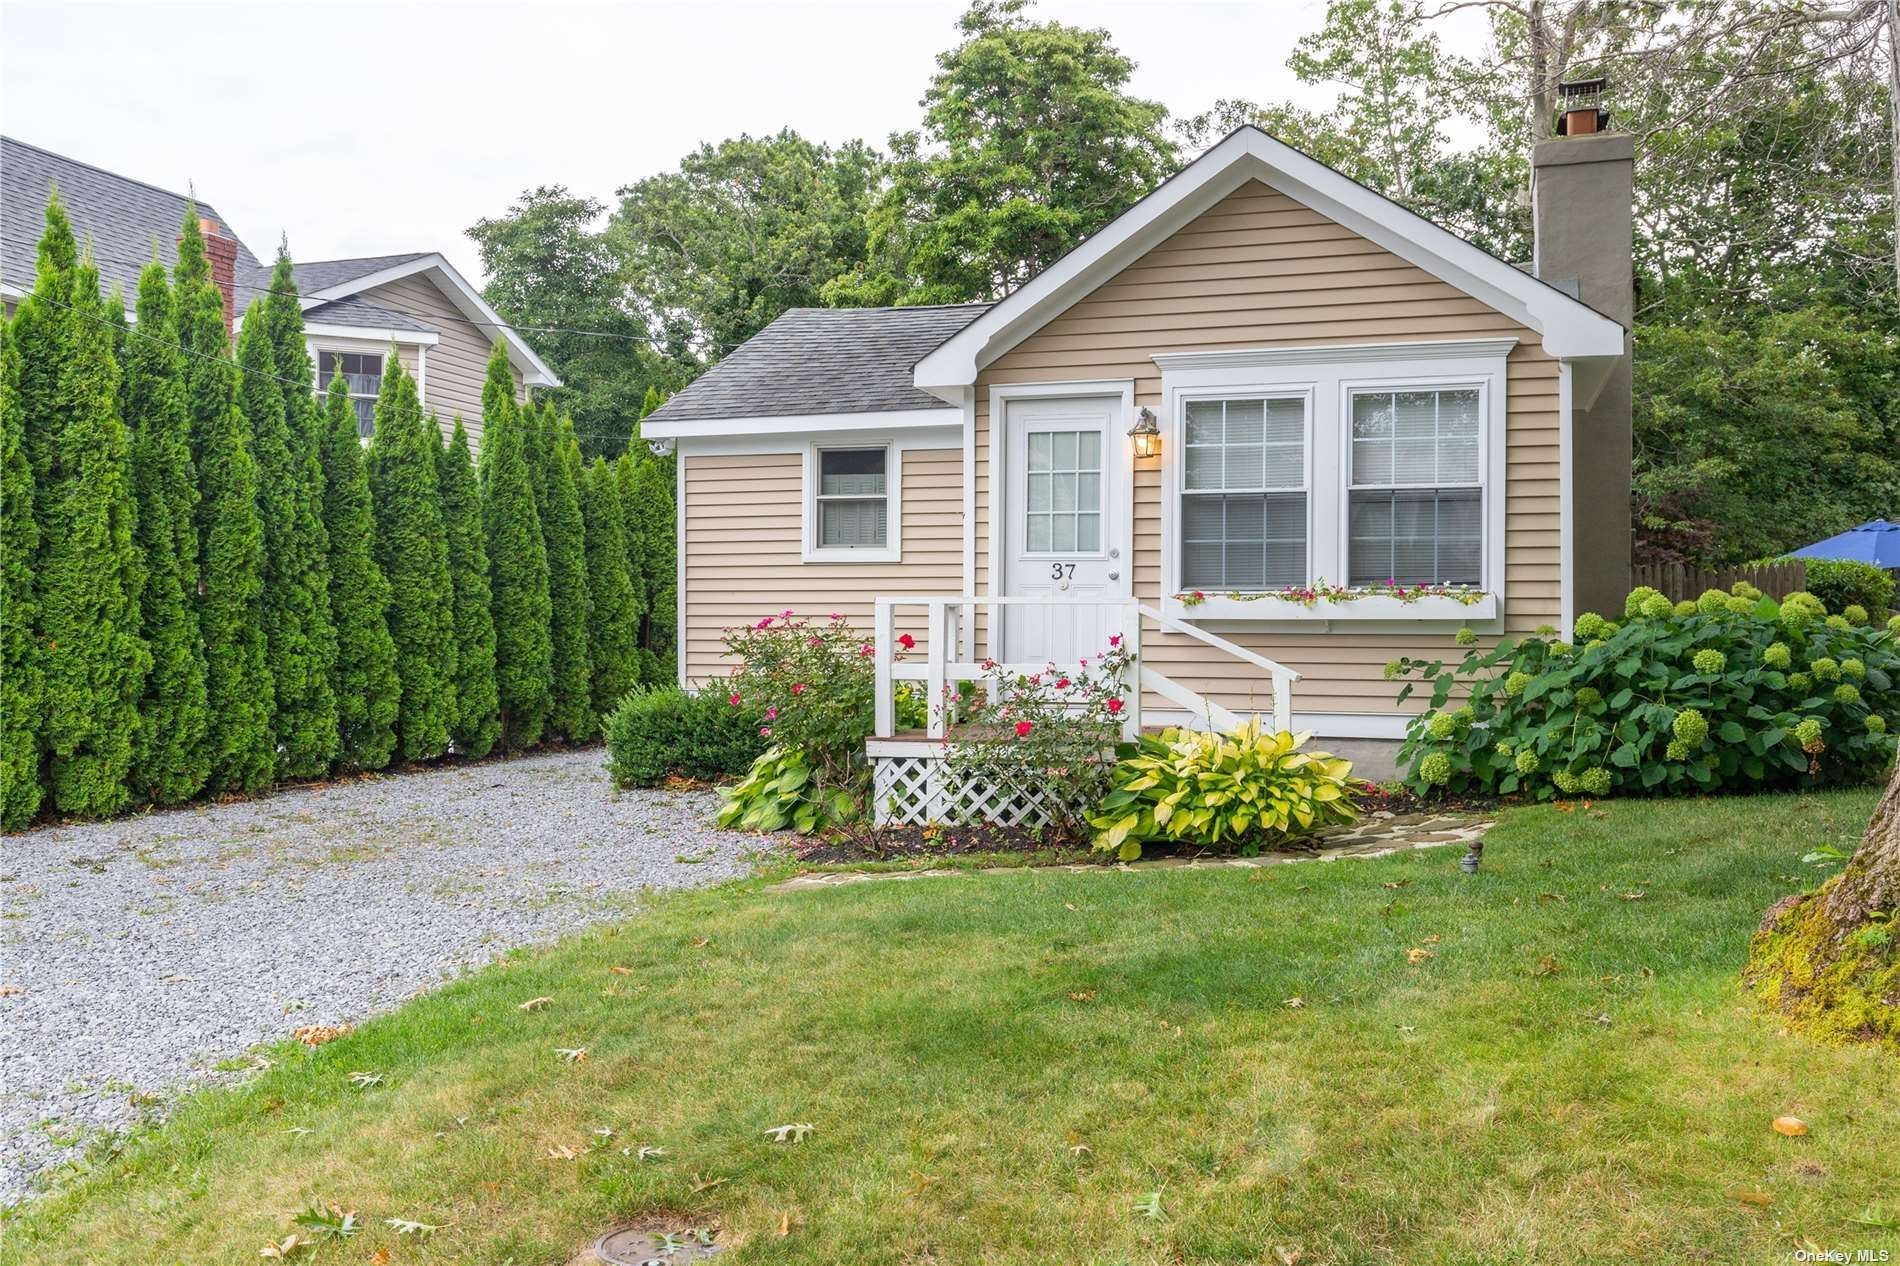 37 Queen Road, Rocky Point, NY 11778 - #: 3339975